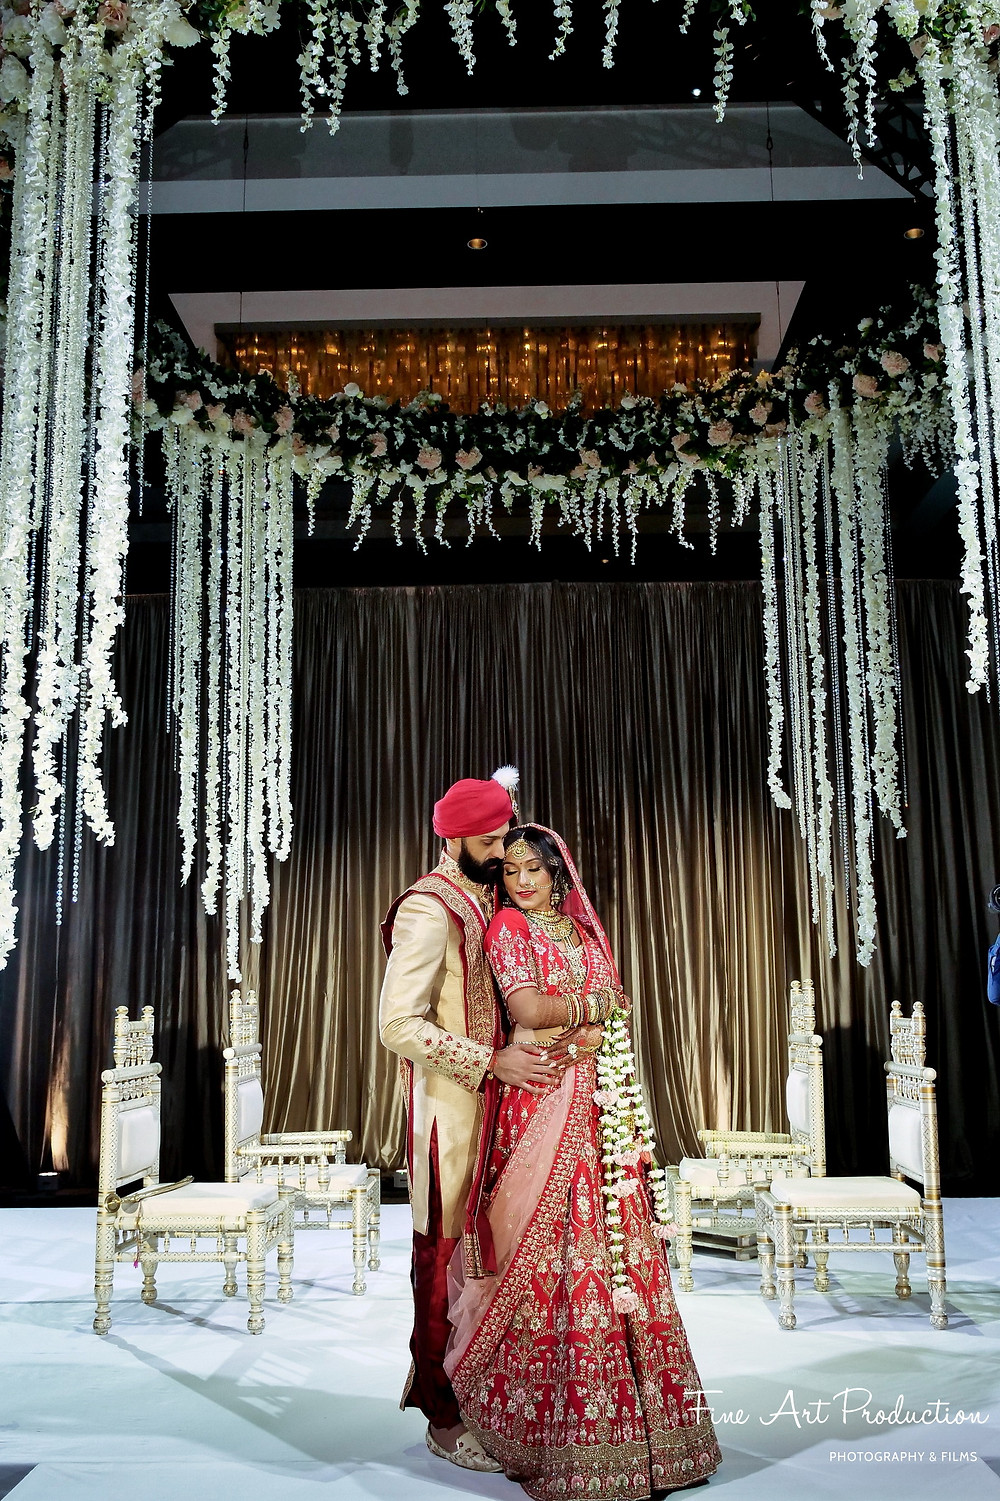 indian-wedding-decor-ideas-tall-mandap-fresh-flowers-hilton-orlando-indian-wedding-photography-fine-arts-productions-lake-mary-orlando-miami-new-york-wedding-photographer